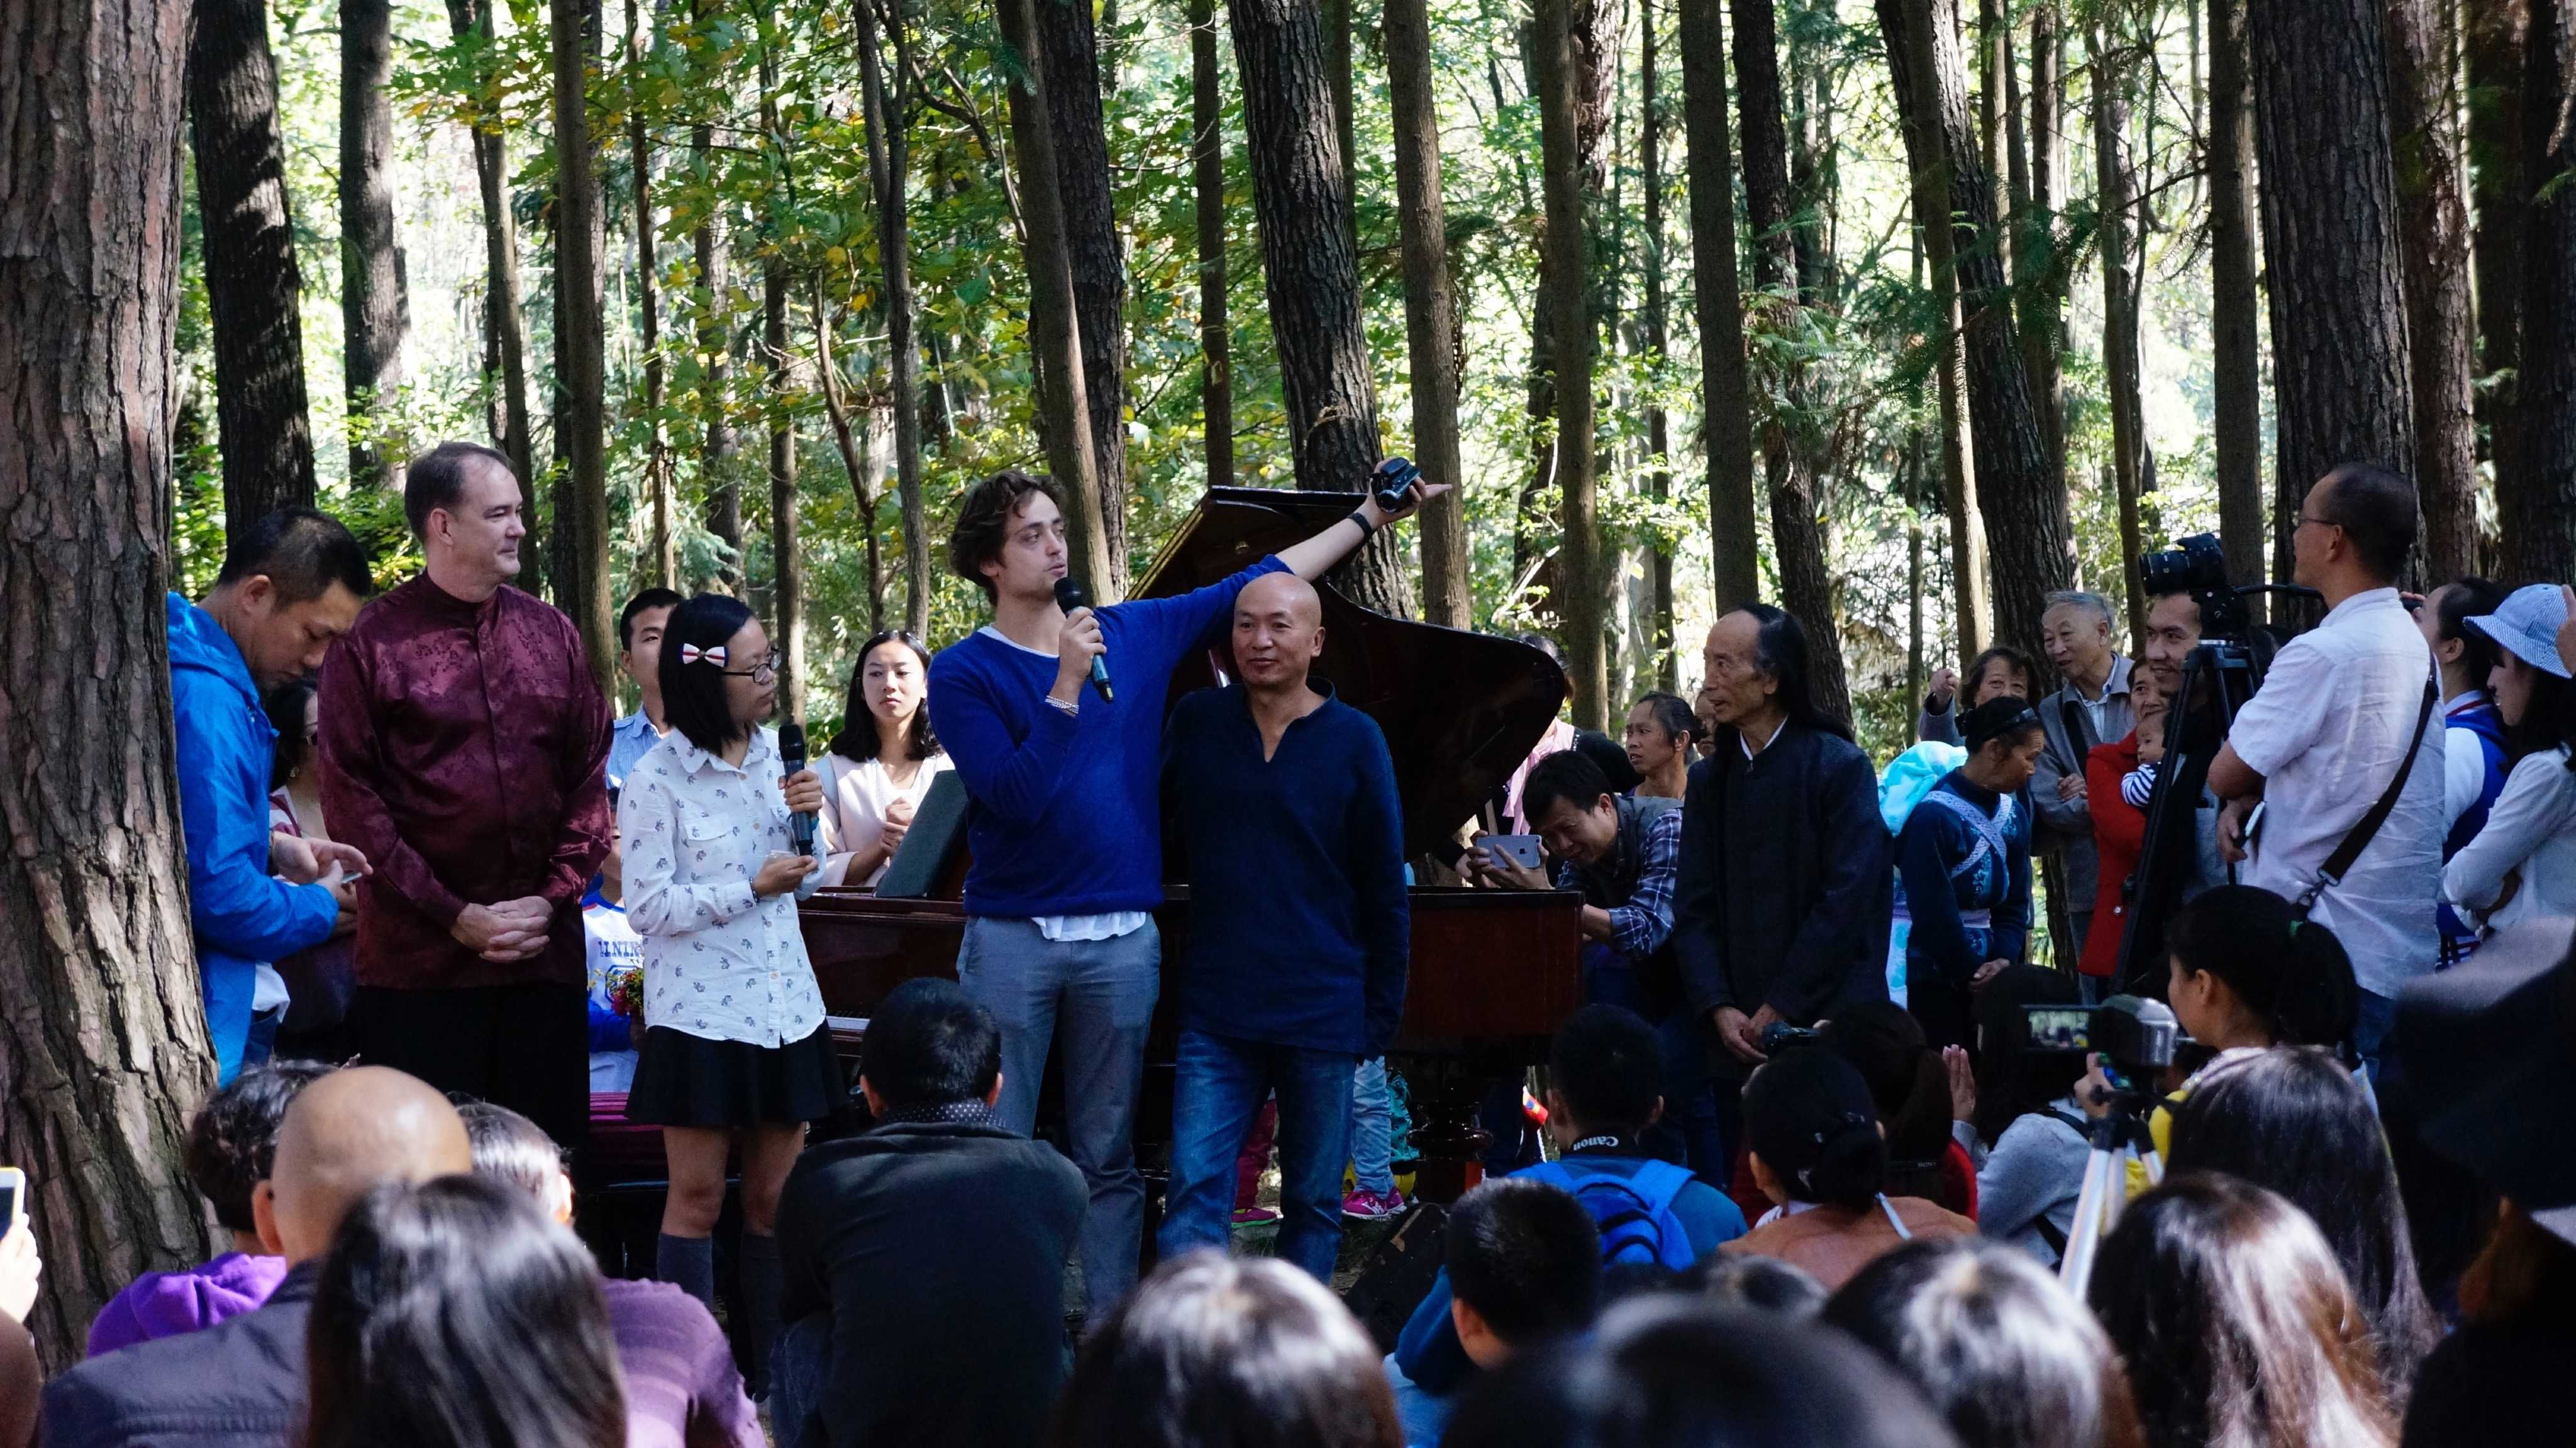 Jeremie Gluckman serves as Emcee during an outdoor Piano concert at the Guizhou University of Finance and Economics.